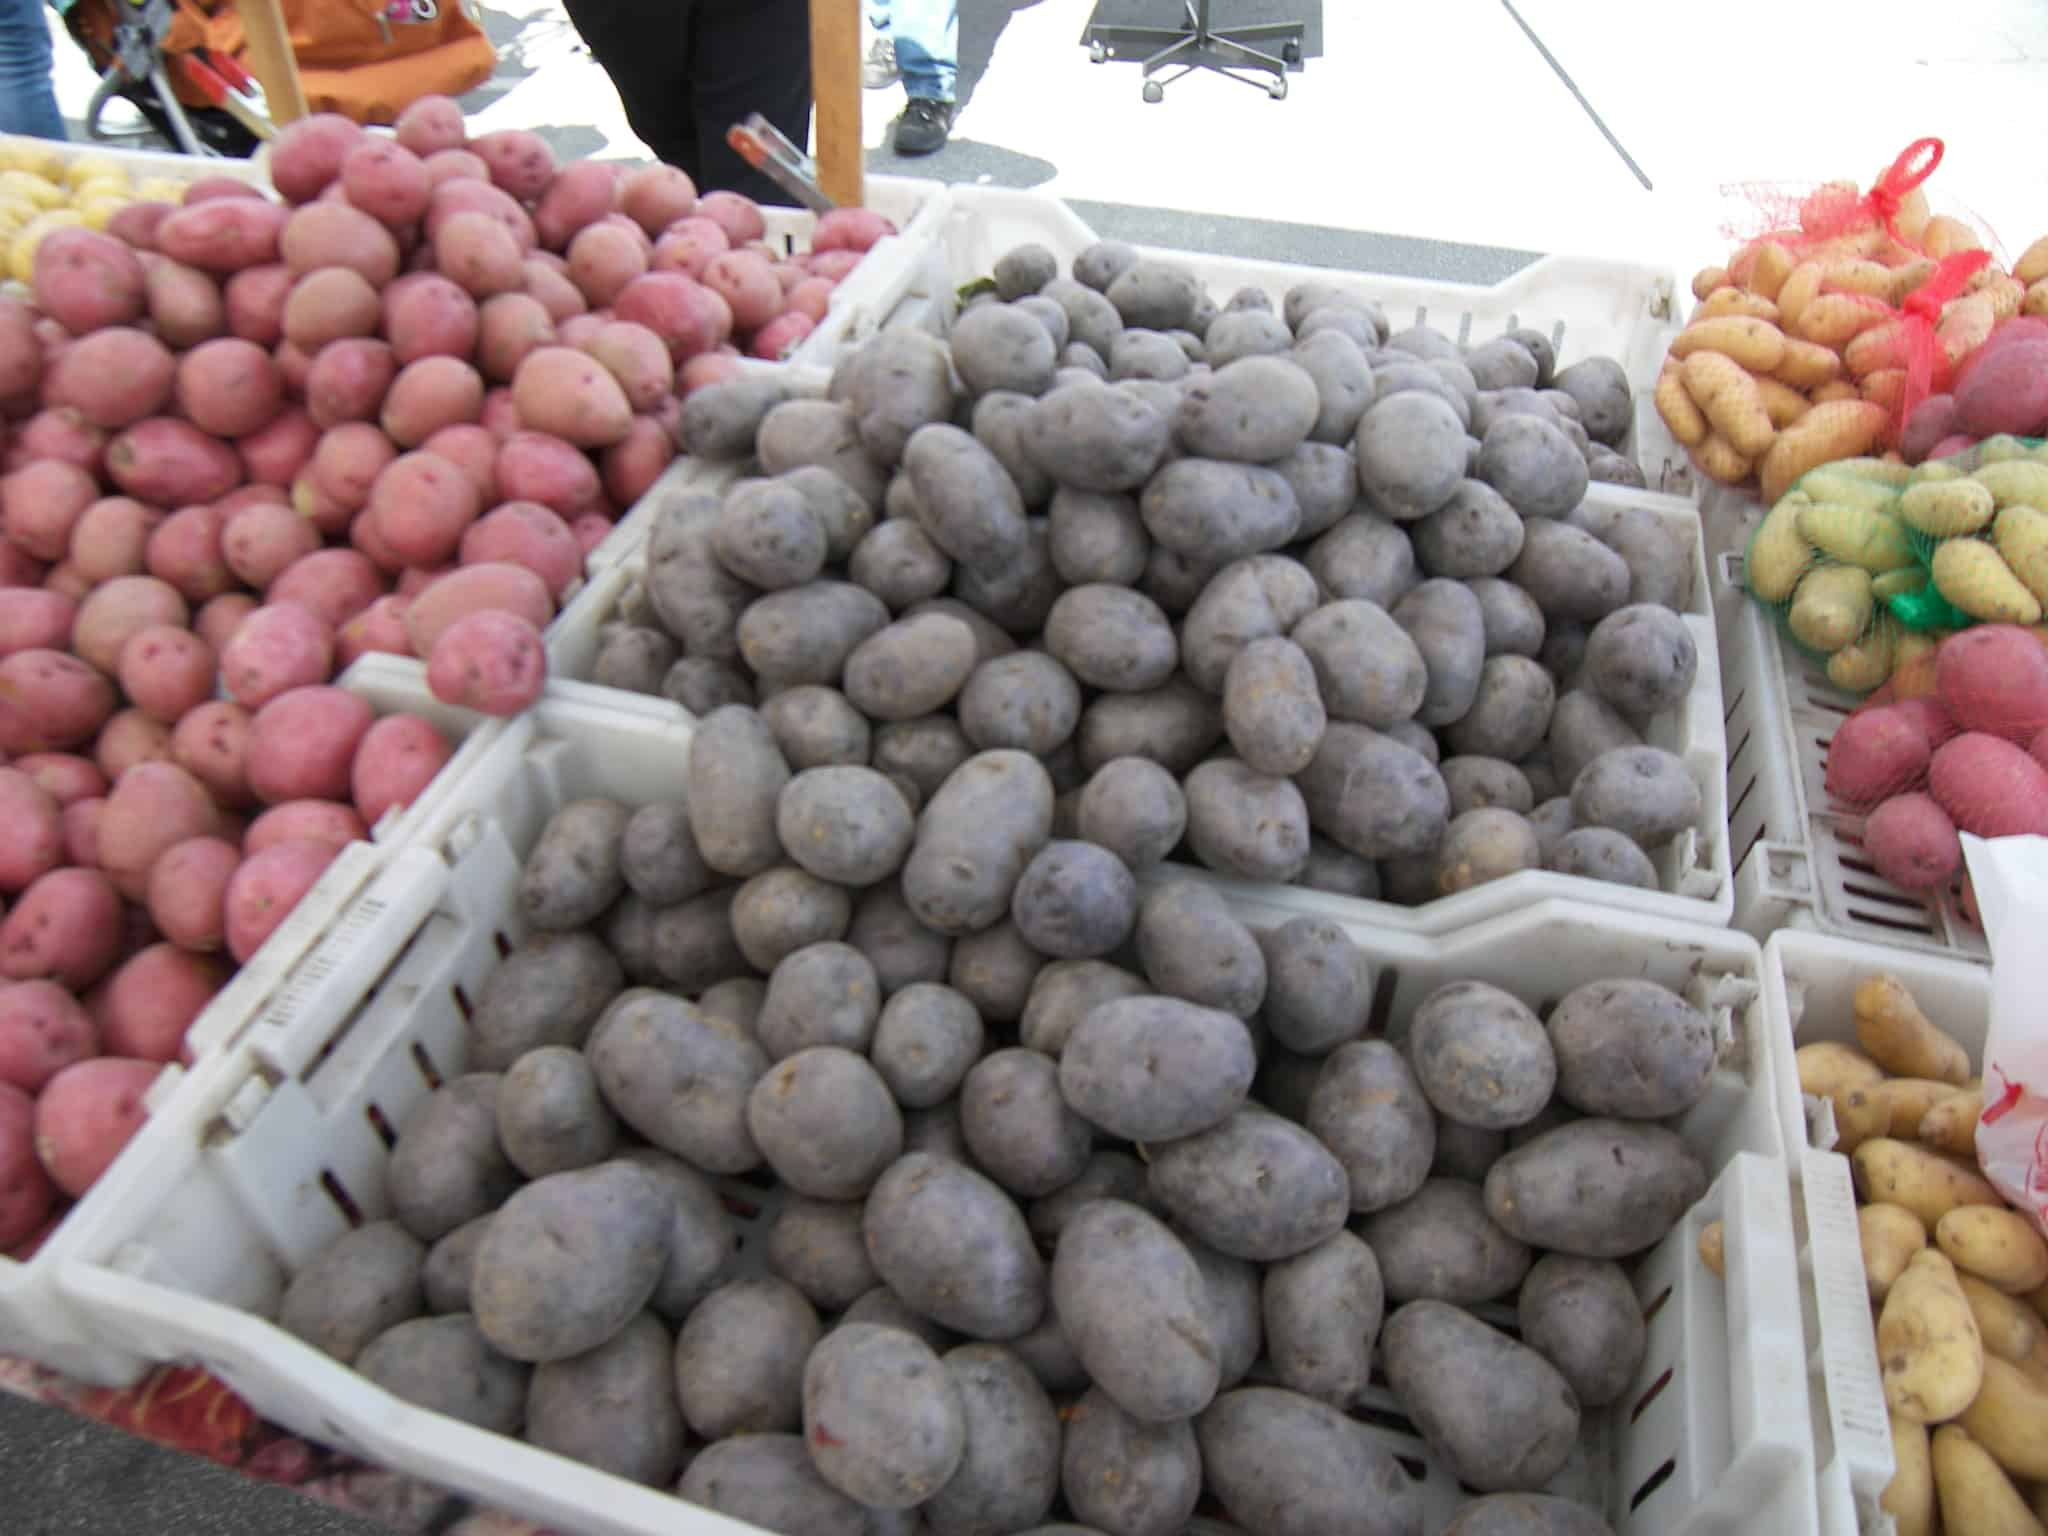 images How to Prepare Red Skin Potatoes